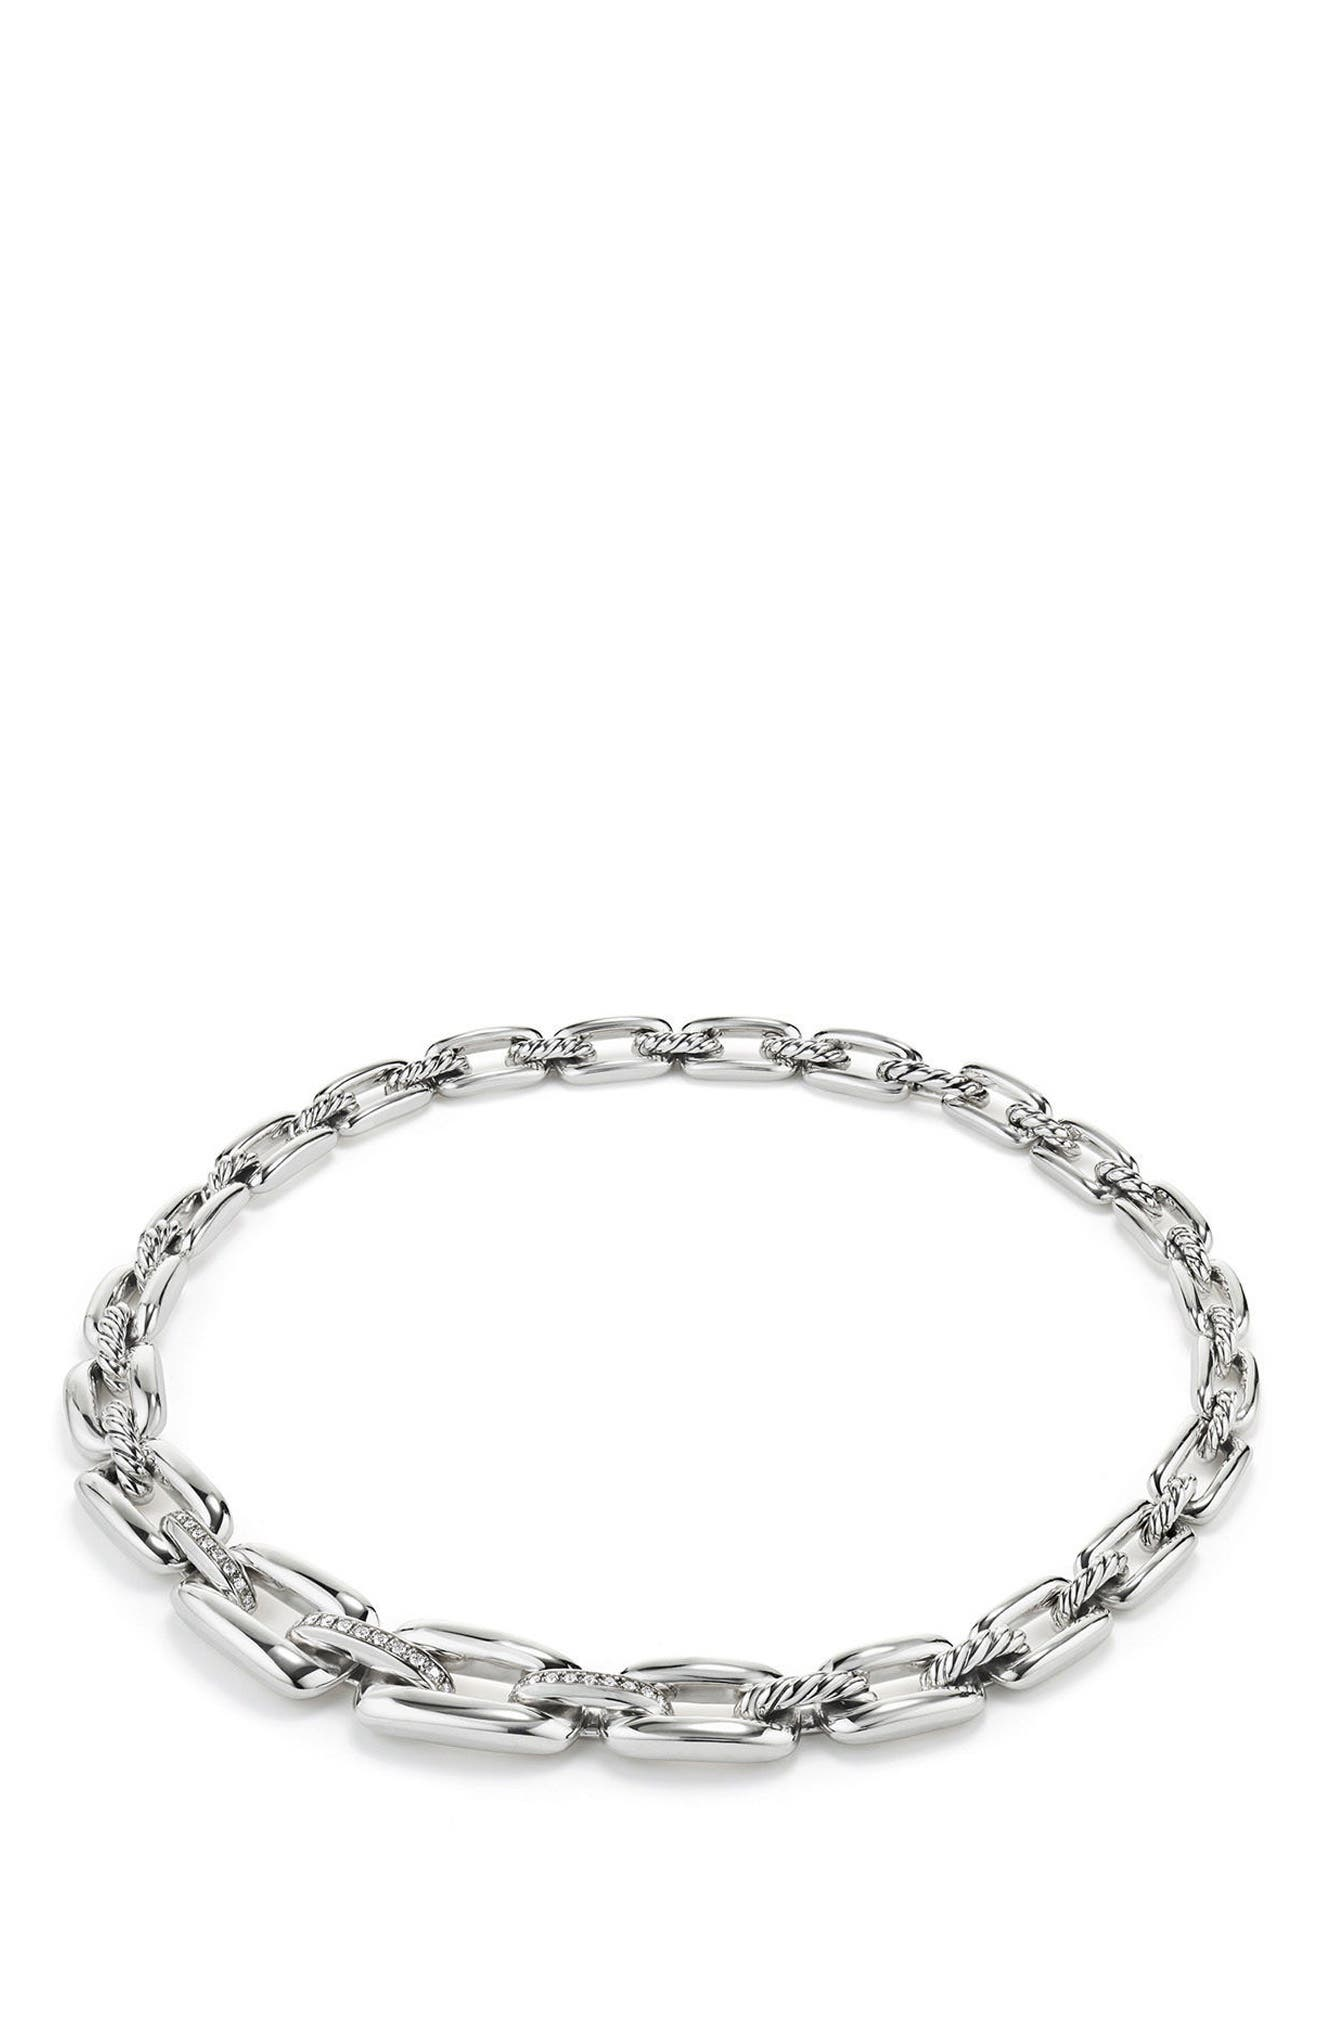 Main Image - David Yurman Wellesley Short Chain Necklace with Diamonds